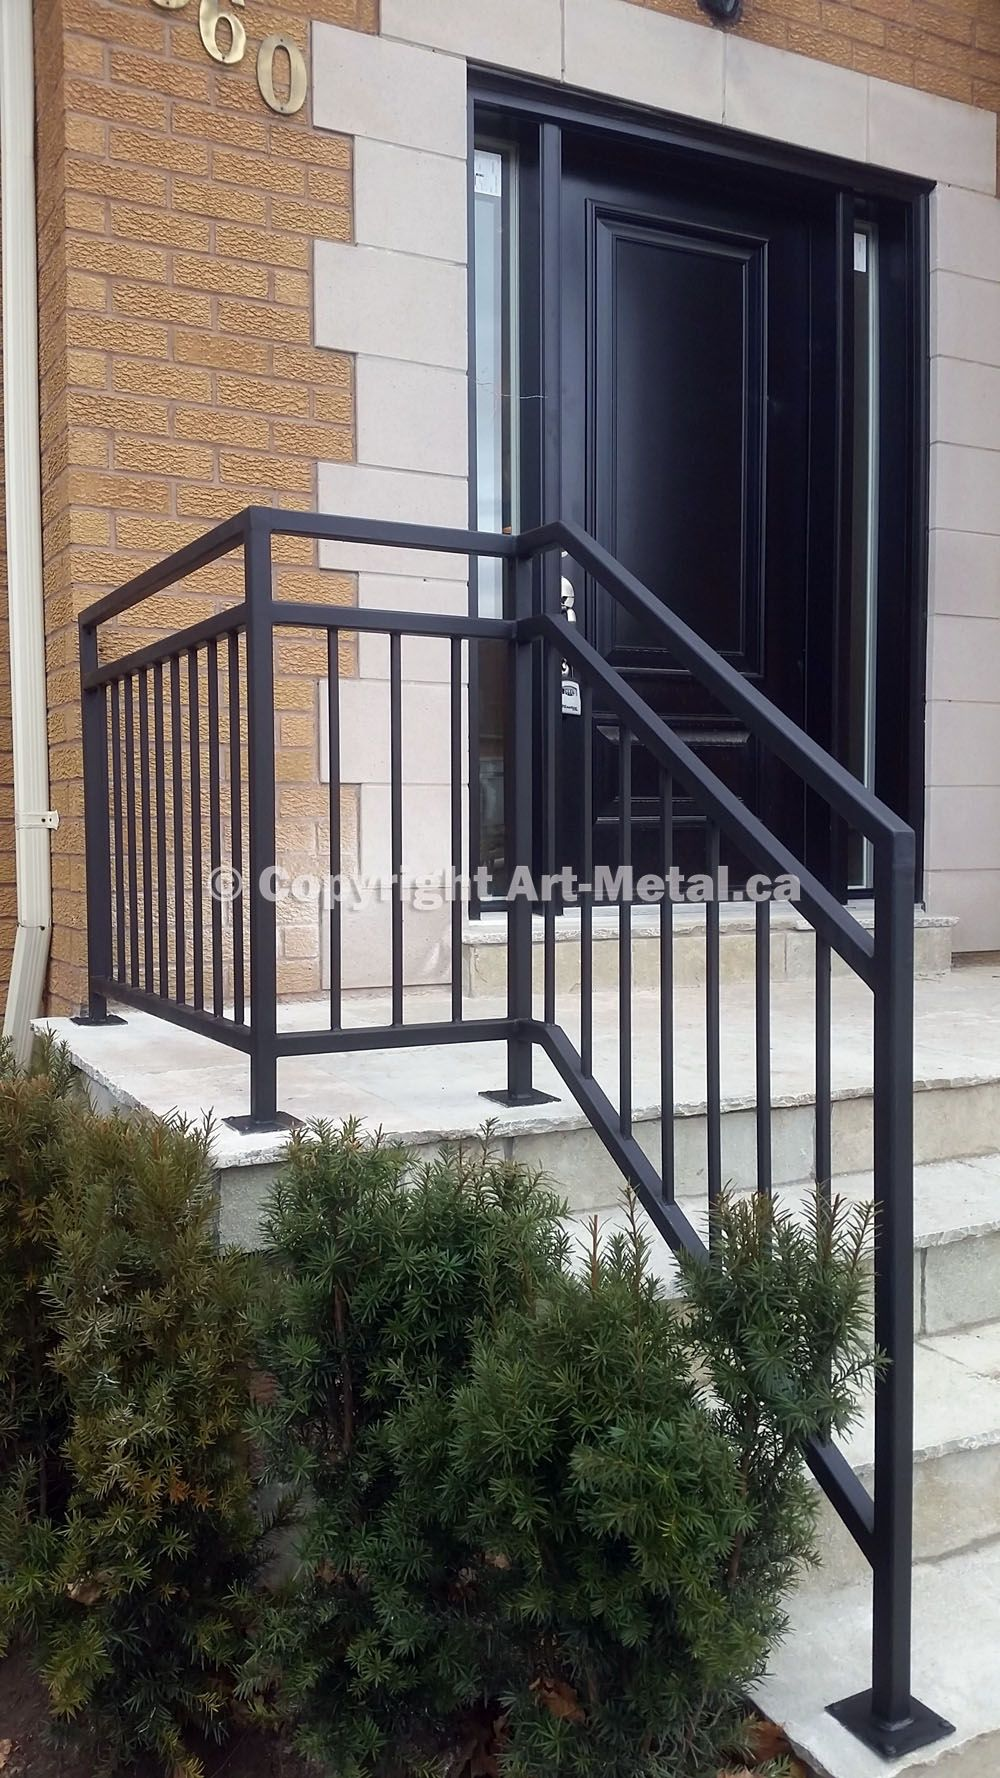 Exterior Railings Handrails For Stairs Porches Decks Outdoor